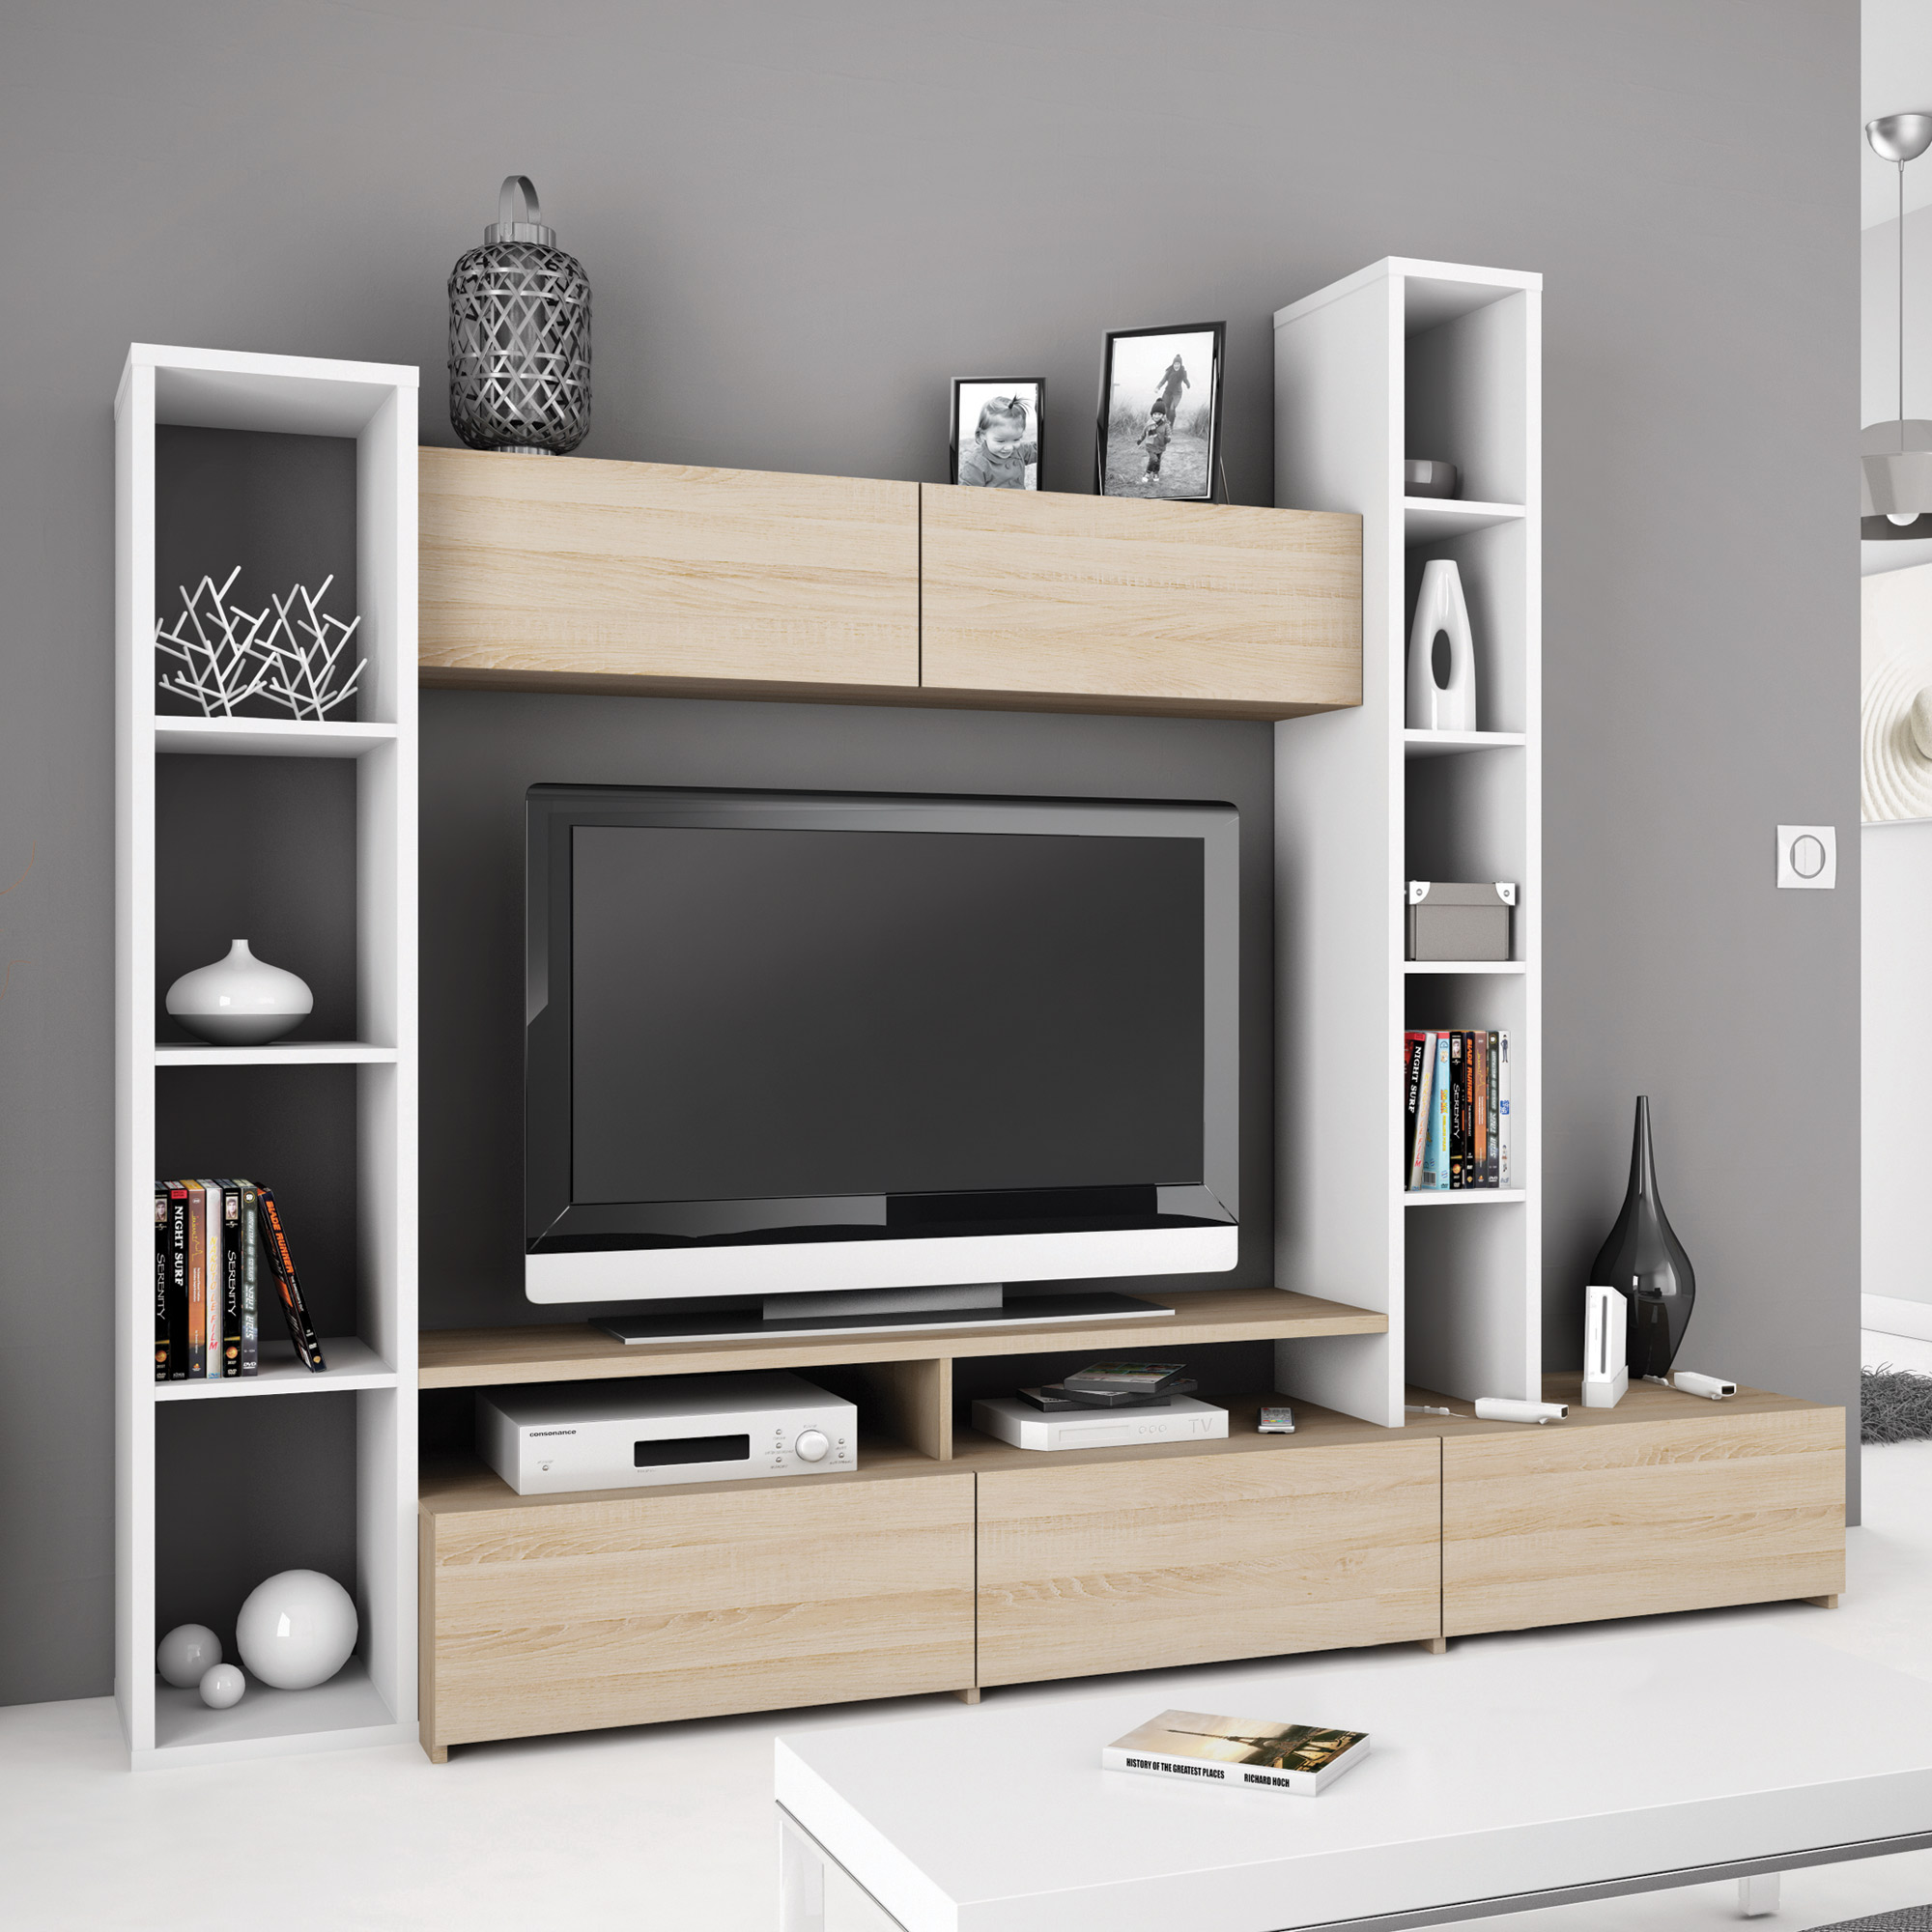 meuble tv blanc avec rangement mobilier design d coration d 39 int rieur. Black Bedroom Furniture Sets. Home Design Ideas